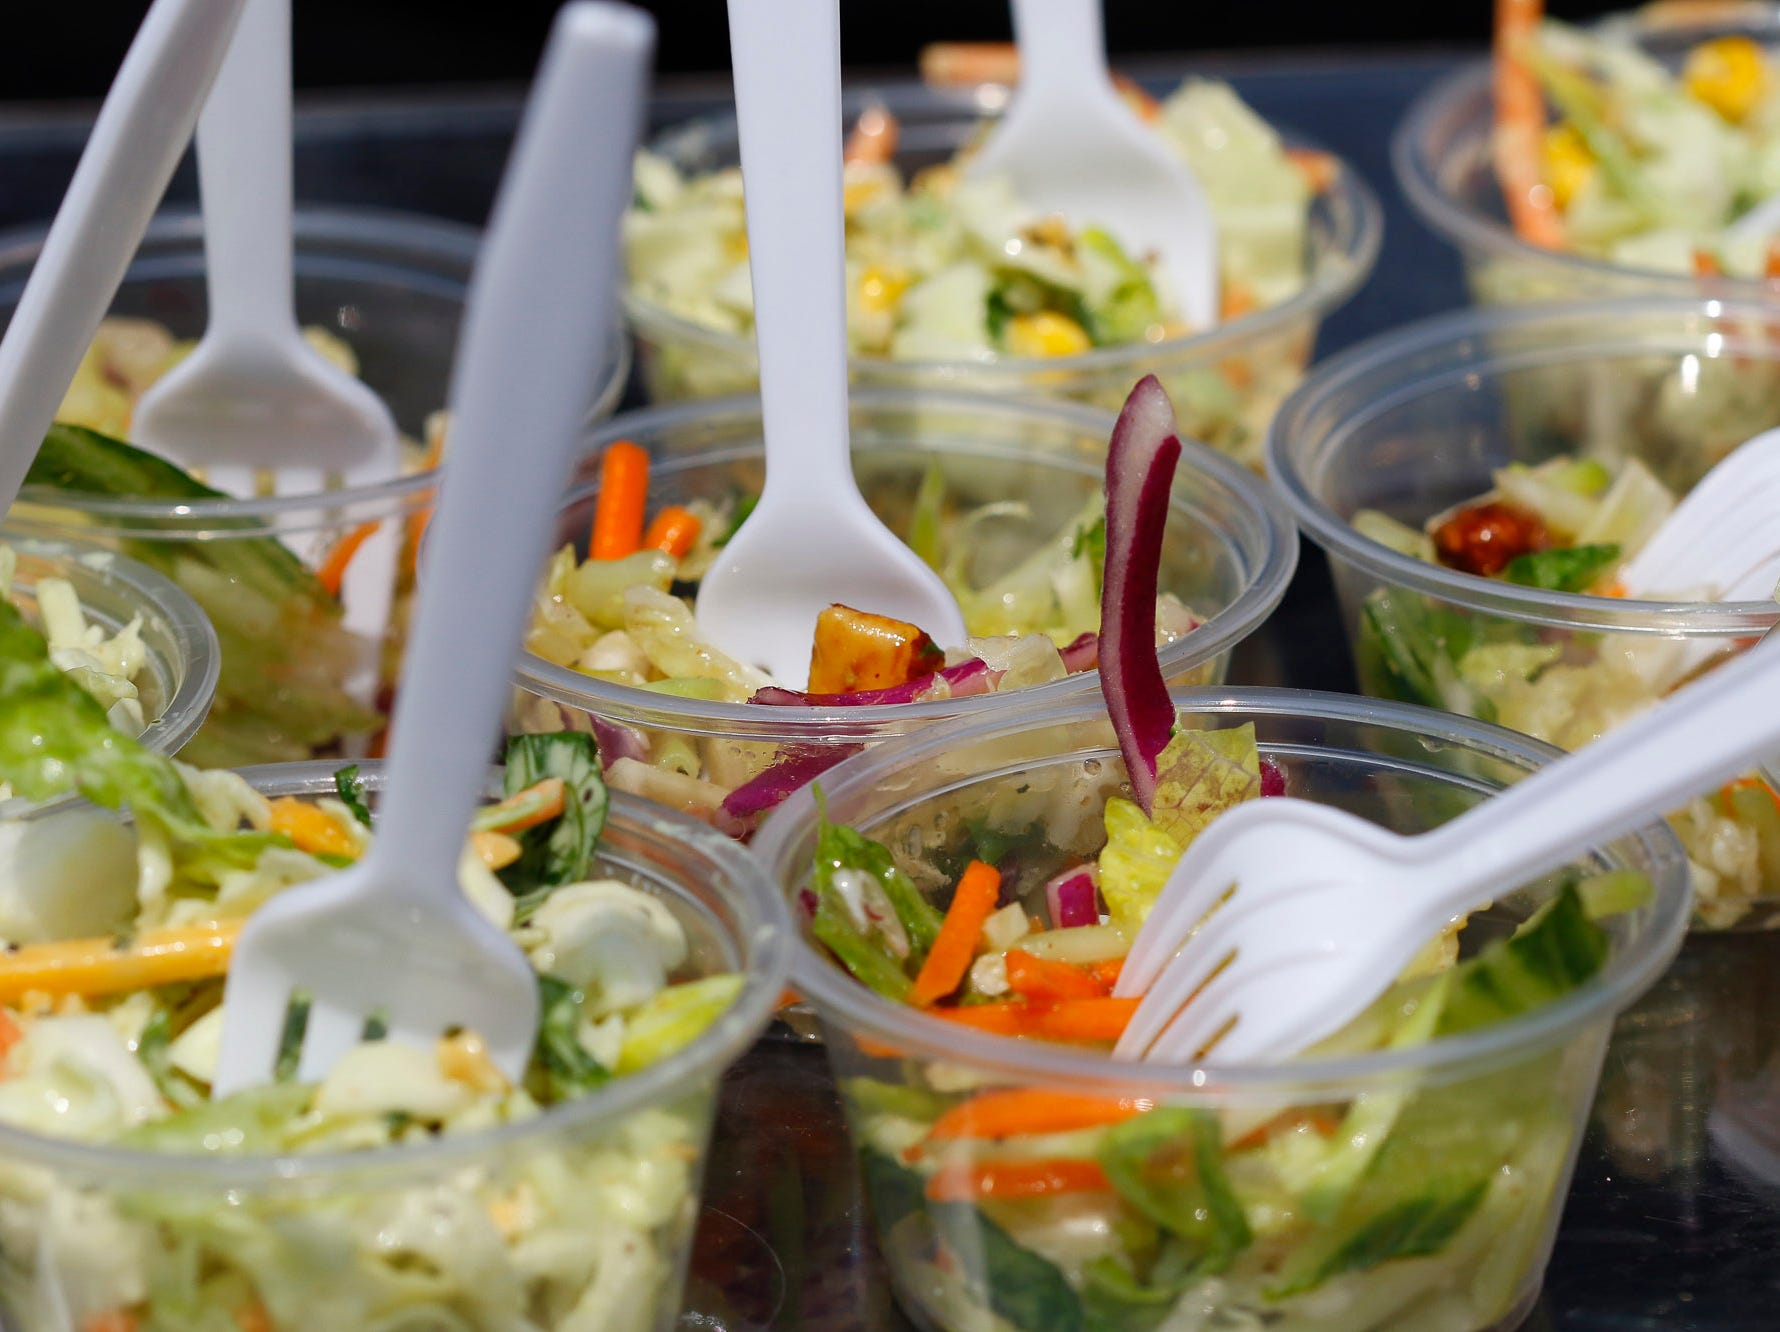 Samples of salad are pictured during the 2018 Salinas Valley Food and Wine Festival which takes place on Main Street in Old Town Salinas on Saturday, August 11, 2018.